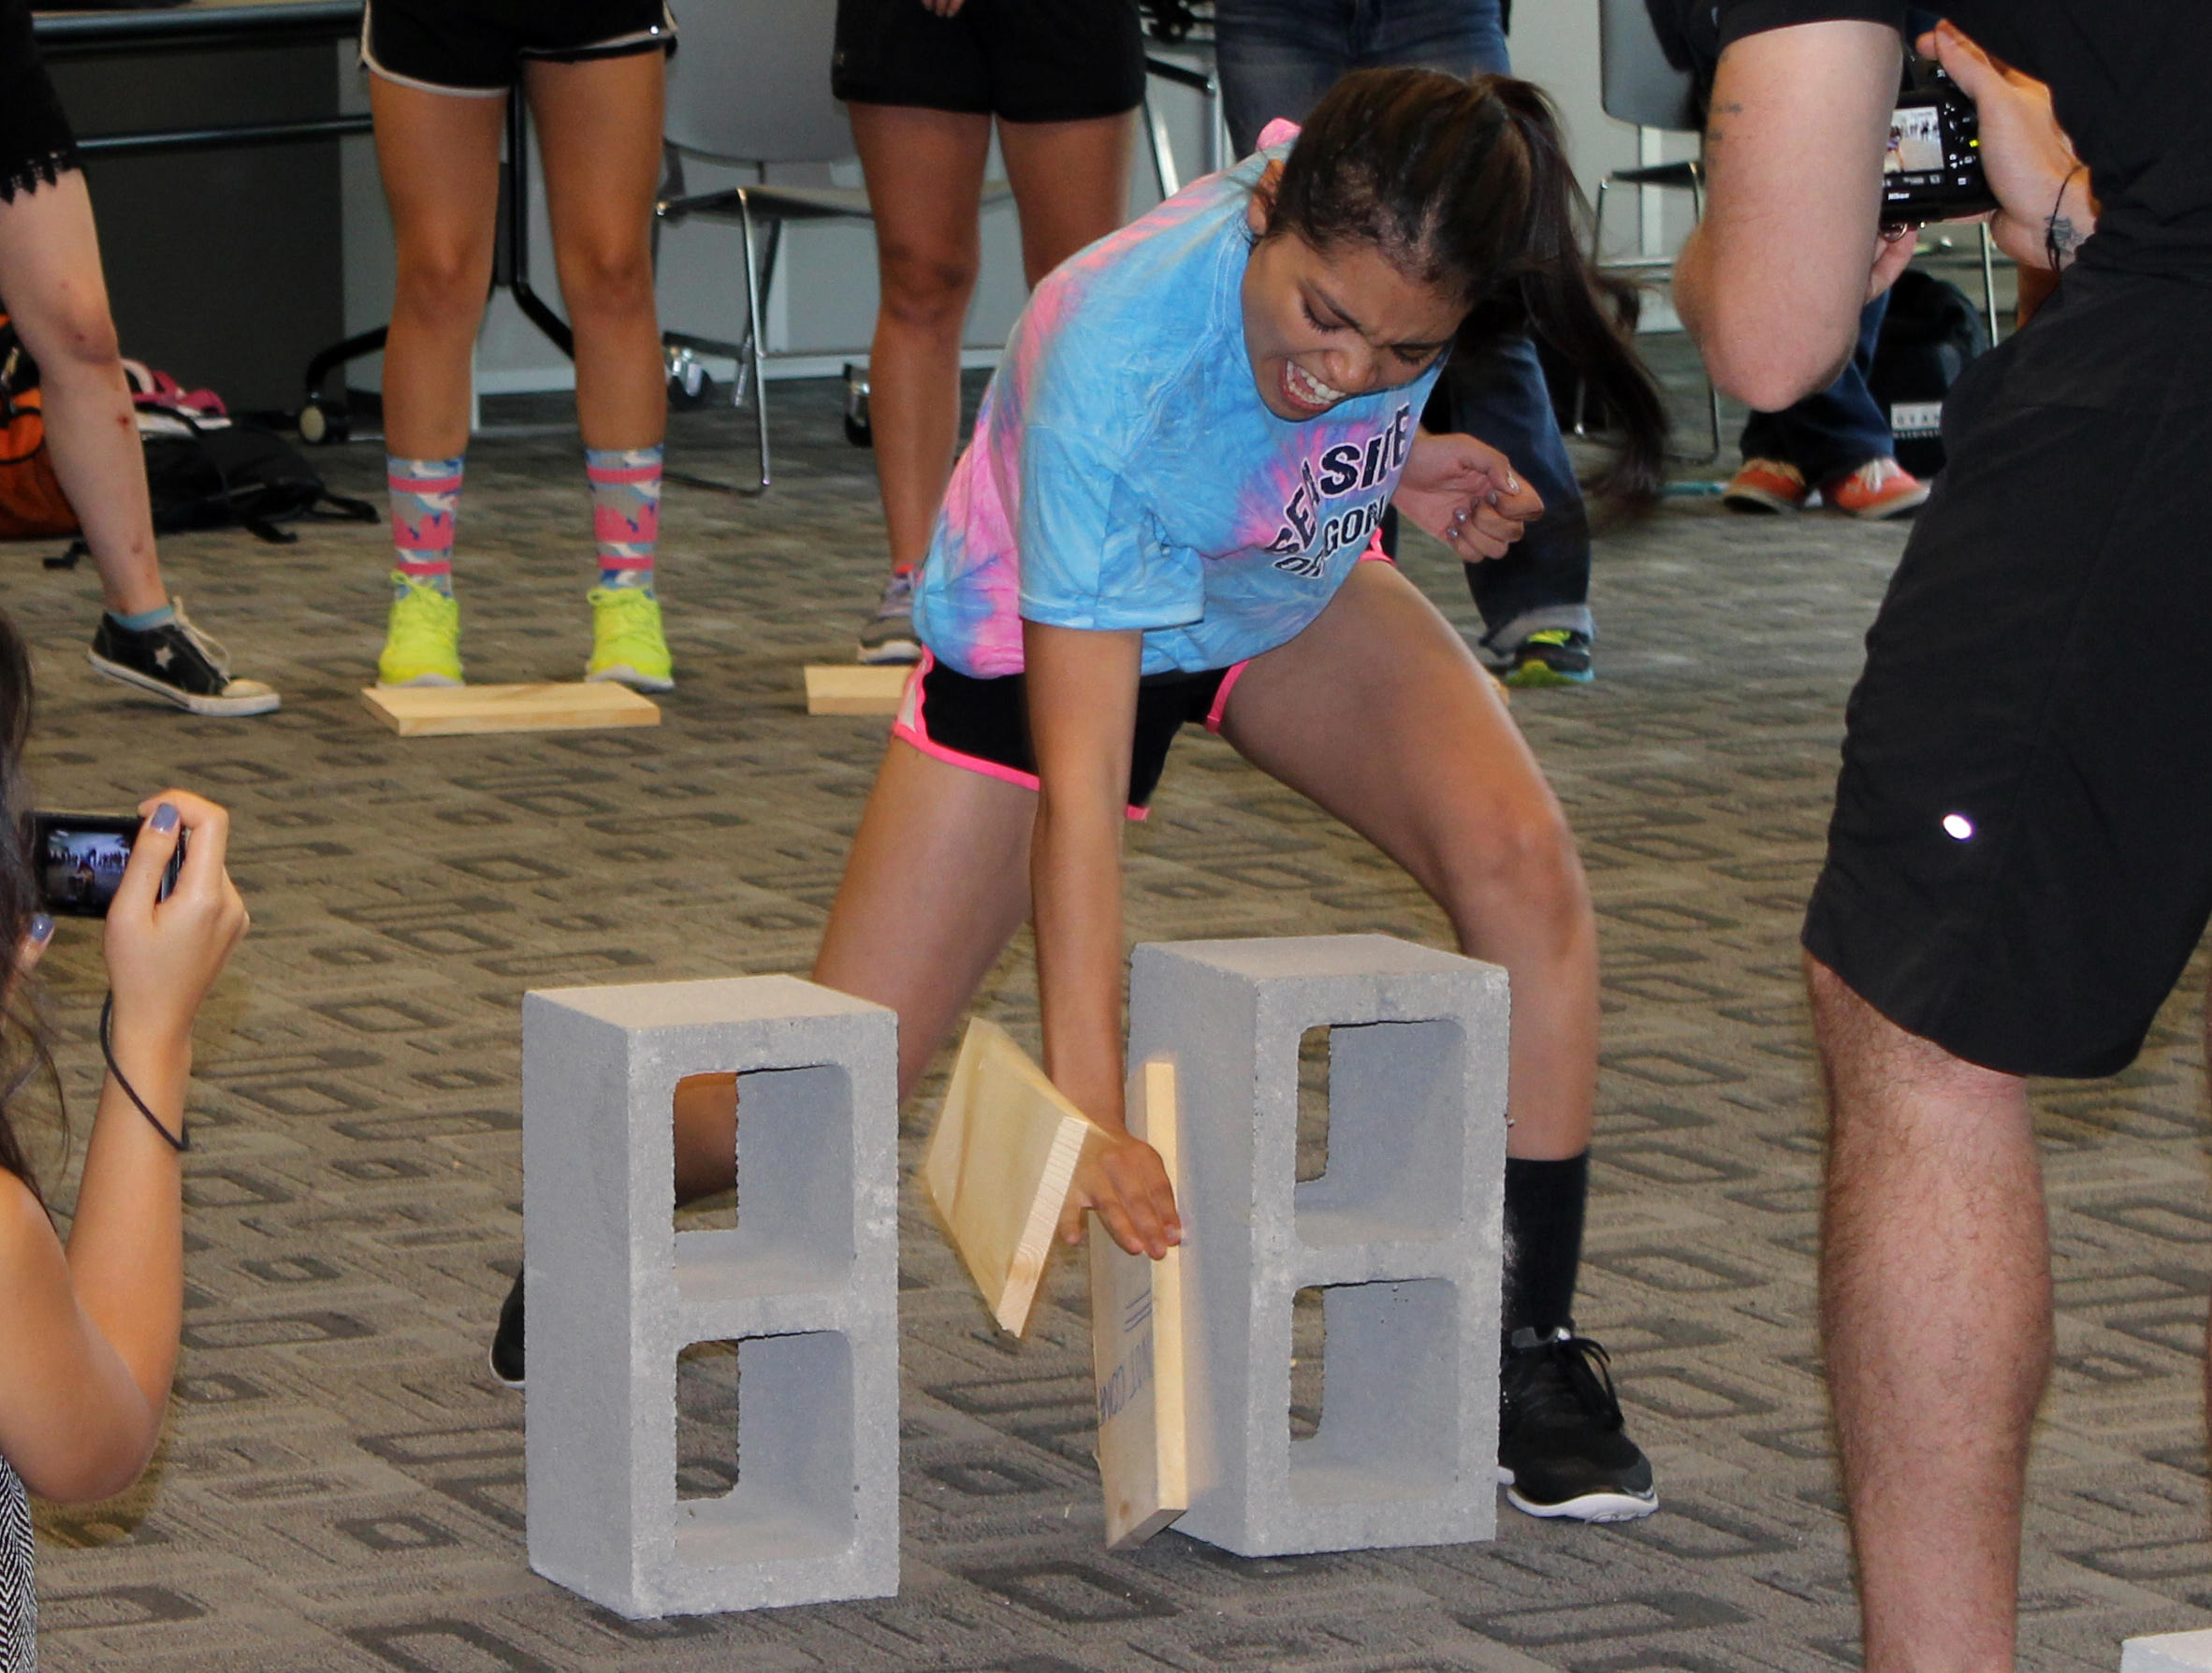 A final board breaking activity at the Leadership Camp helped students understand the concept of breaking through obstacles.